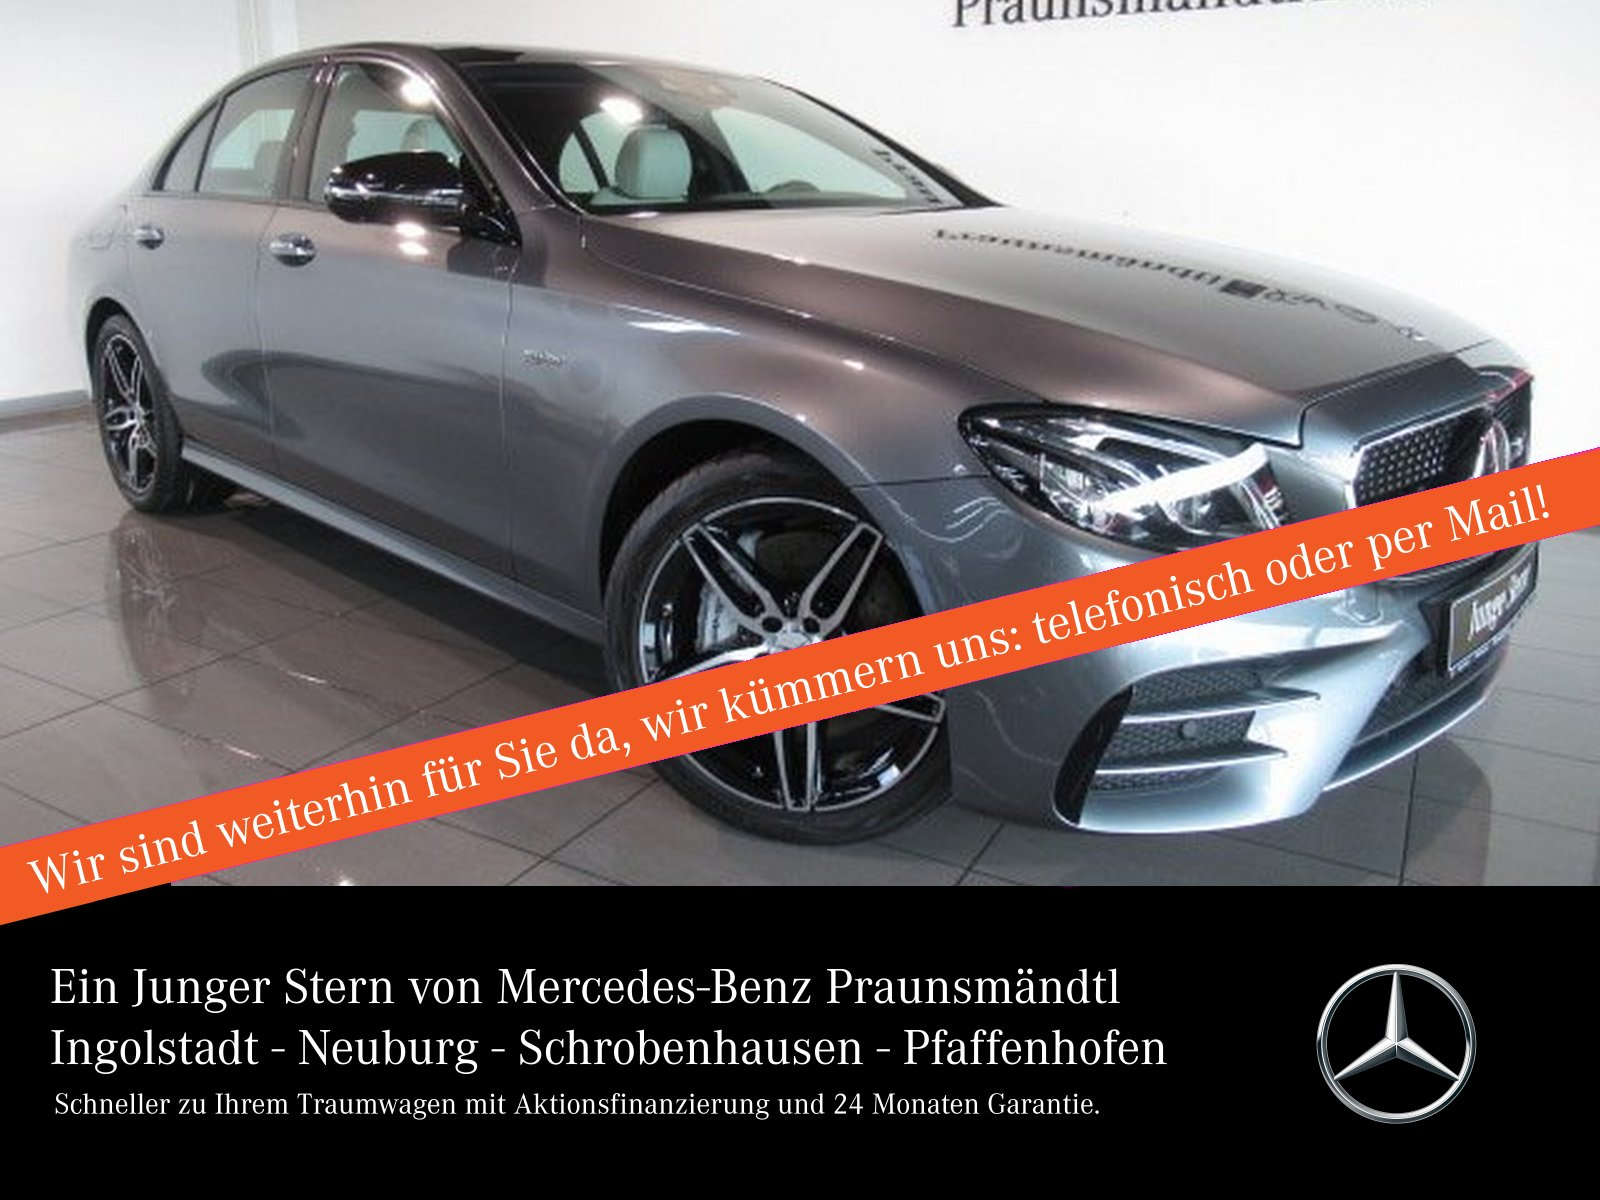 Mercedes-Benz E 43 AMG 4M Distronic/Comand/Panorama/360/Widesc, Jahr 2016, Benzin